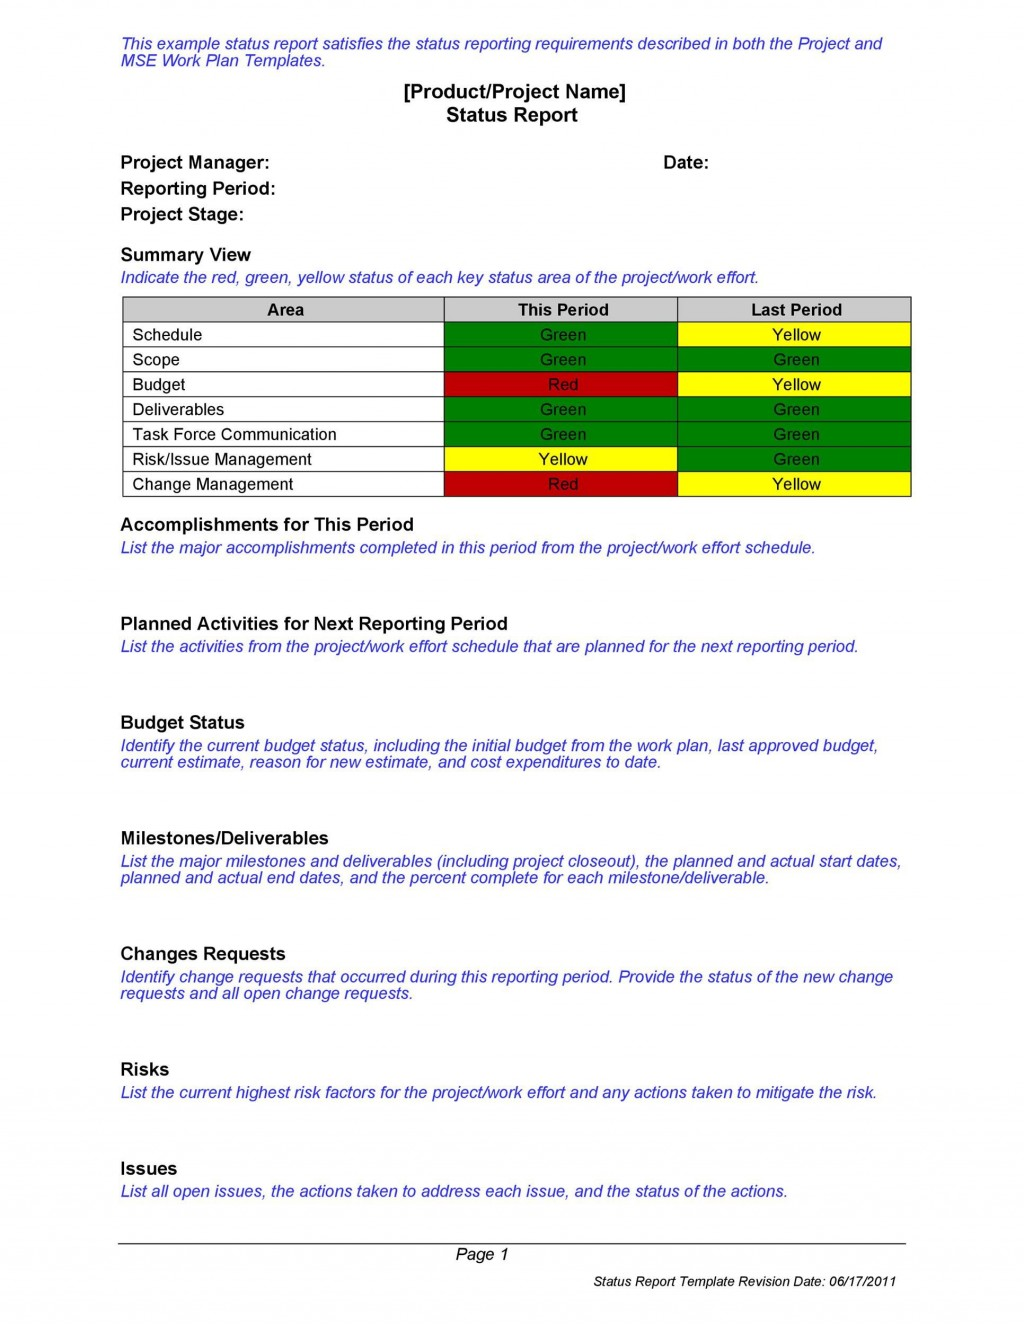 008 Remarkable Project Management Weekly Statu Report Template Ppt Picture  Template+powerpointLarge